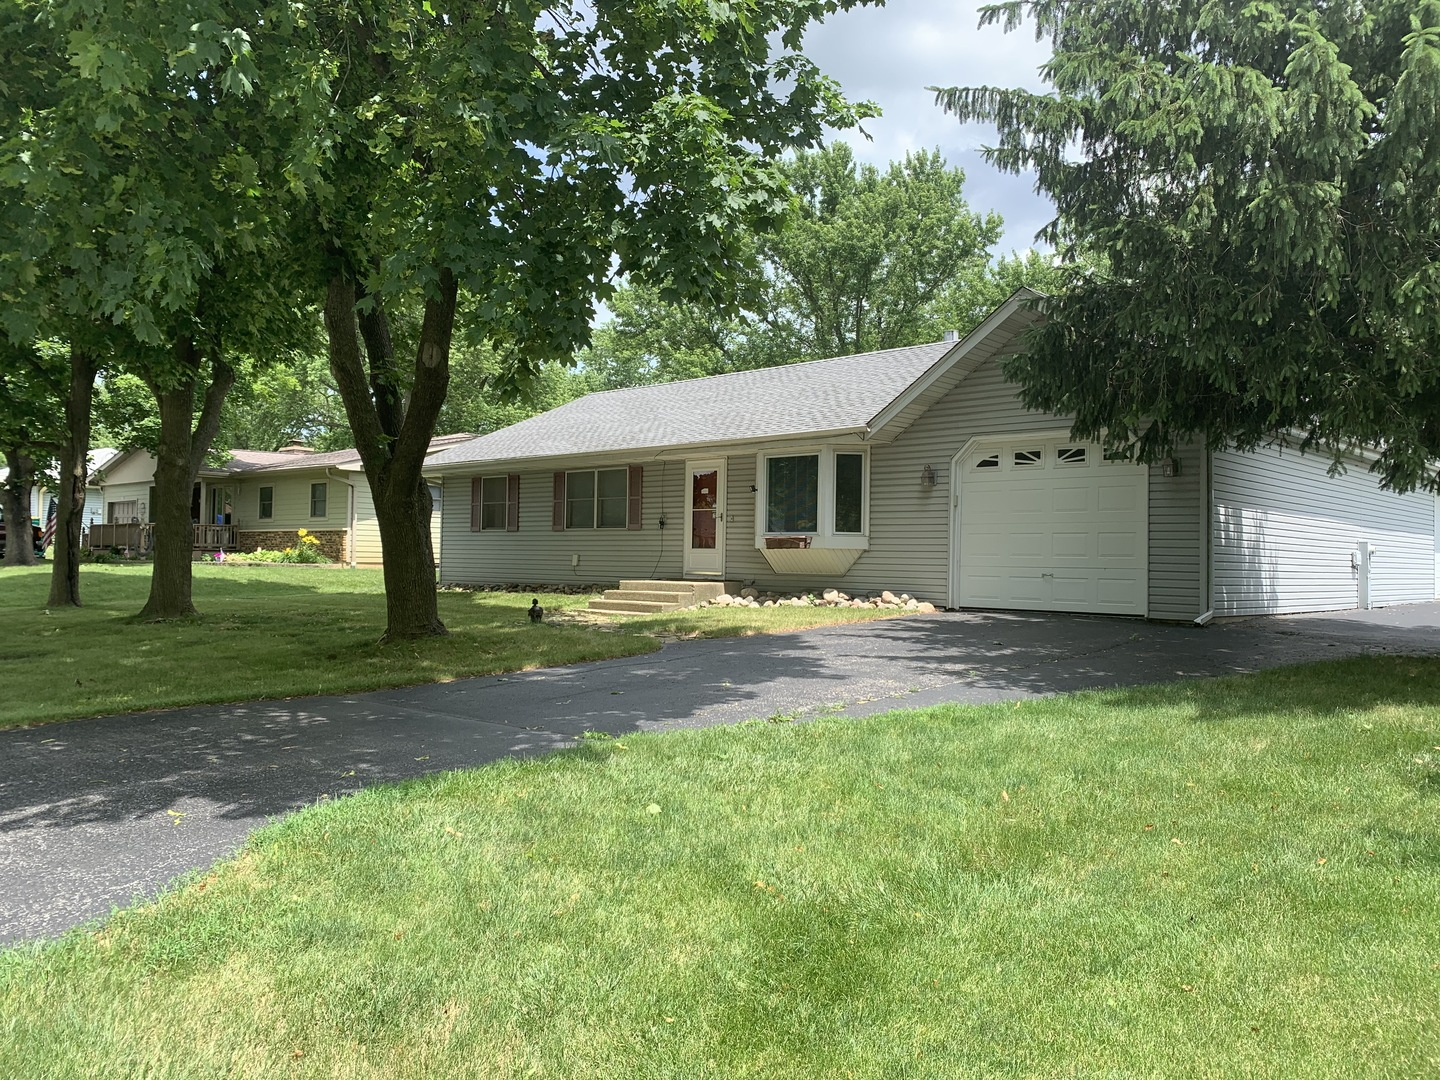 Photo for 2S363 Meadow Drive, Batavia, IL 60510 (MLS # 10672559)